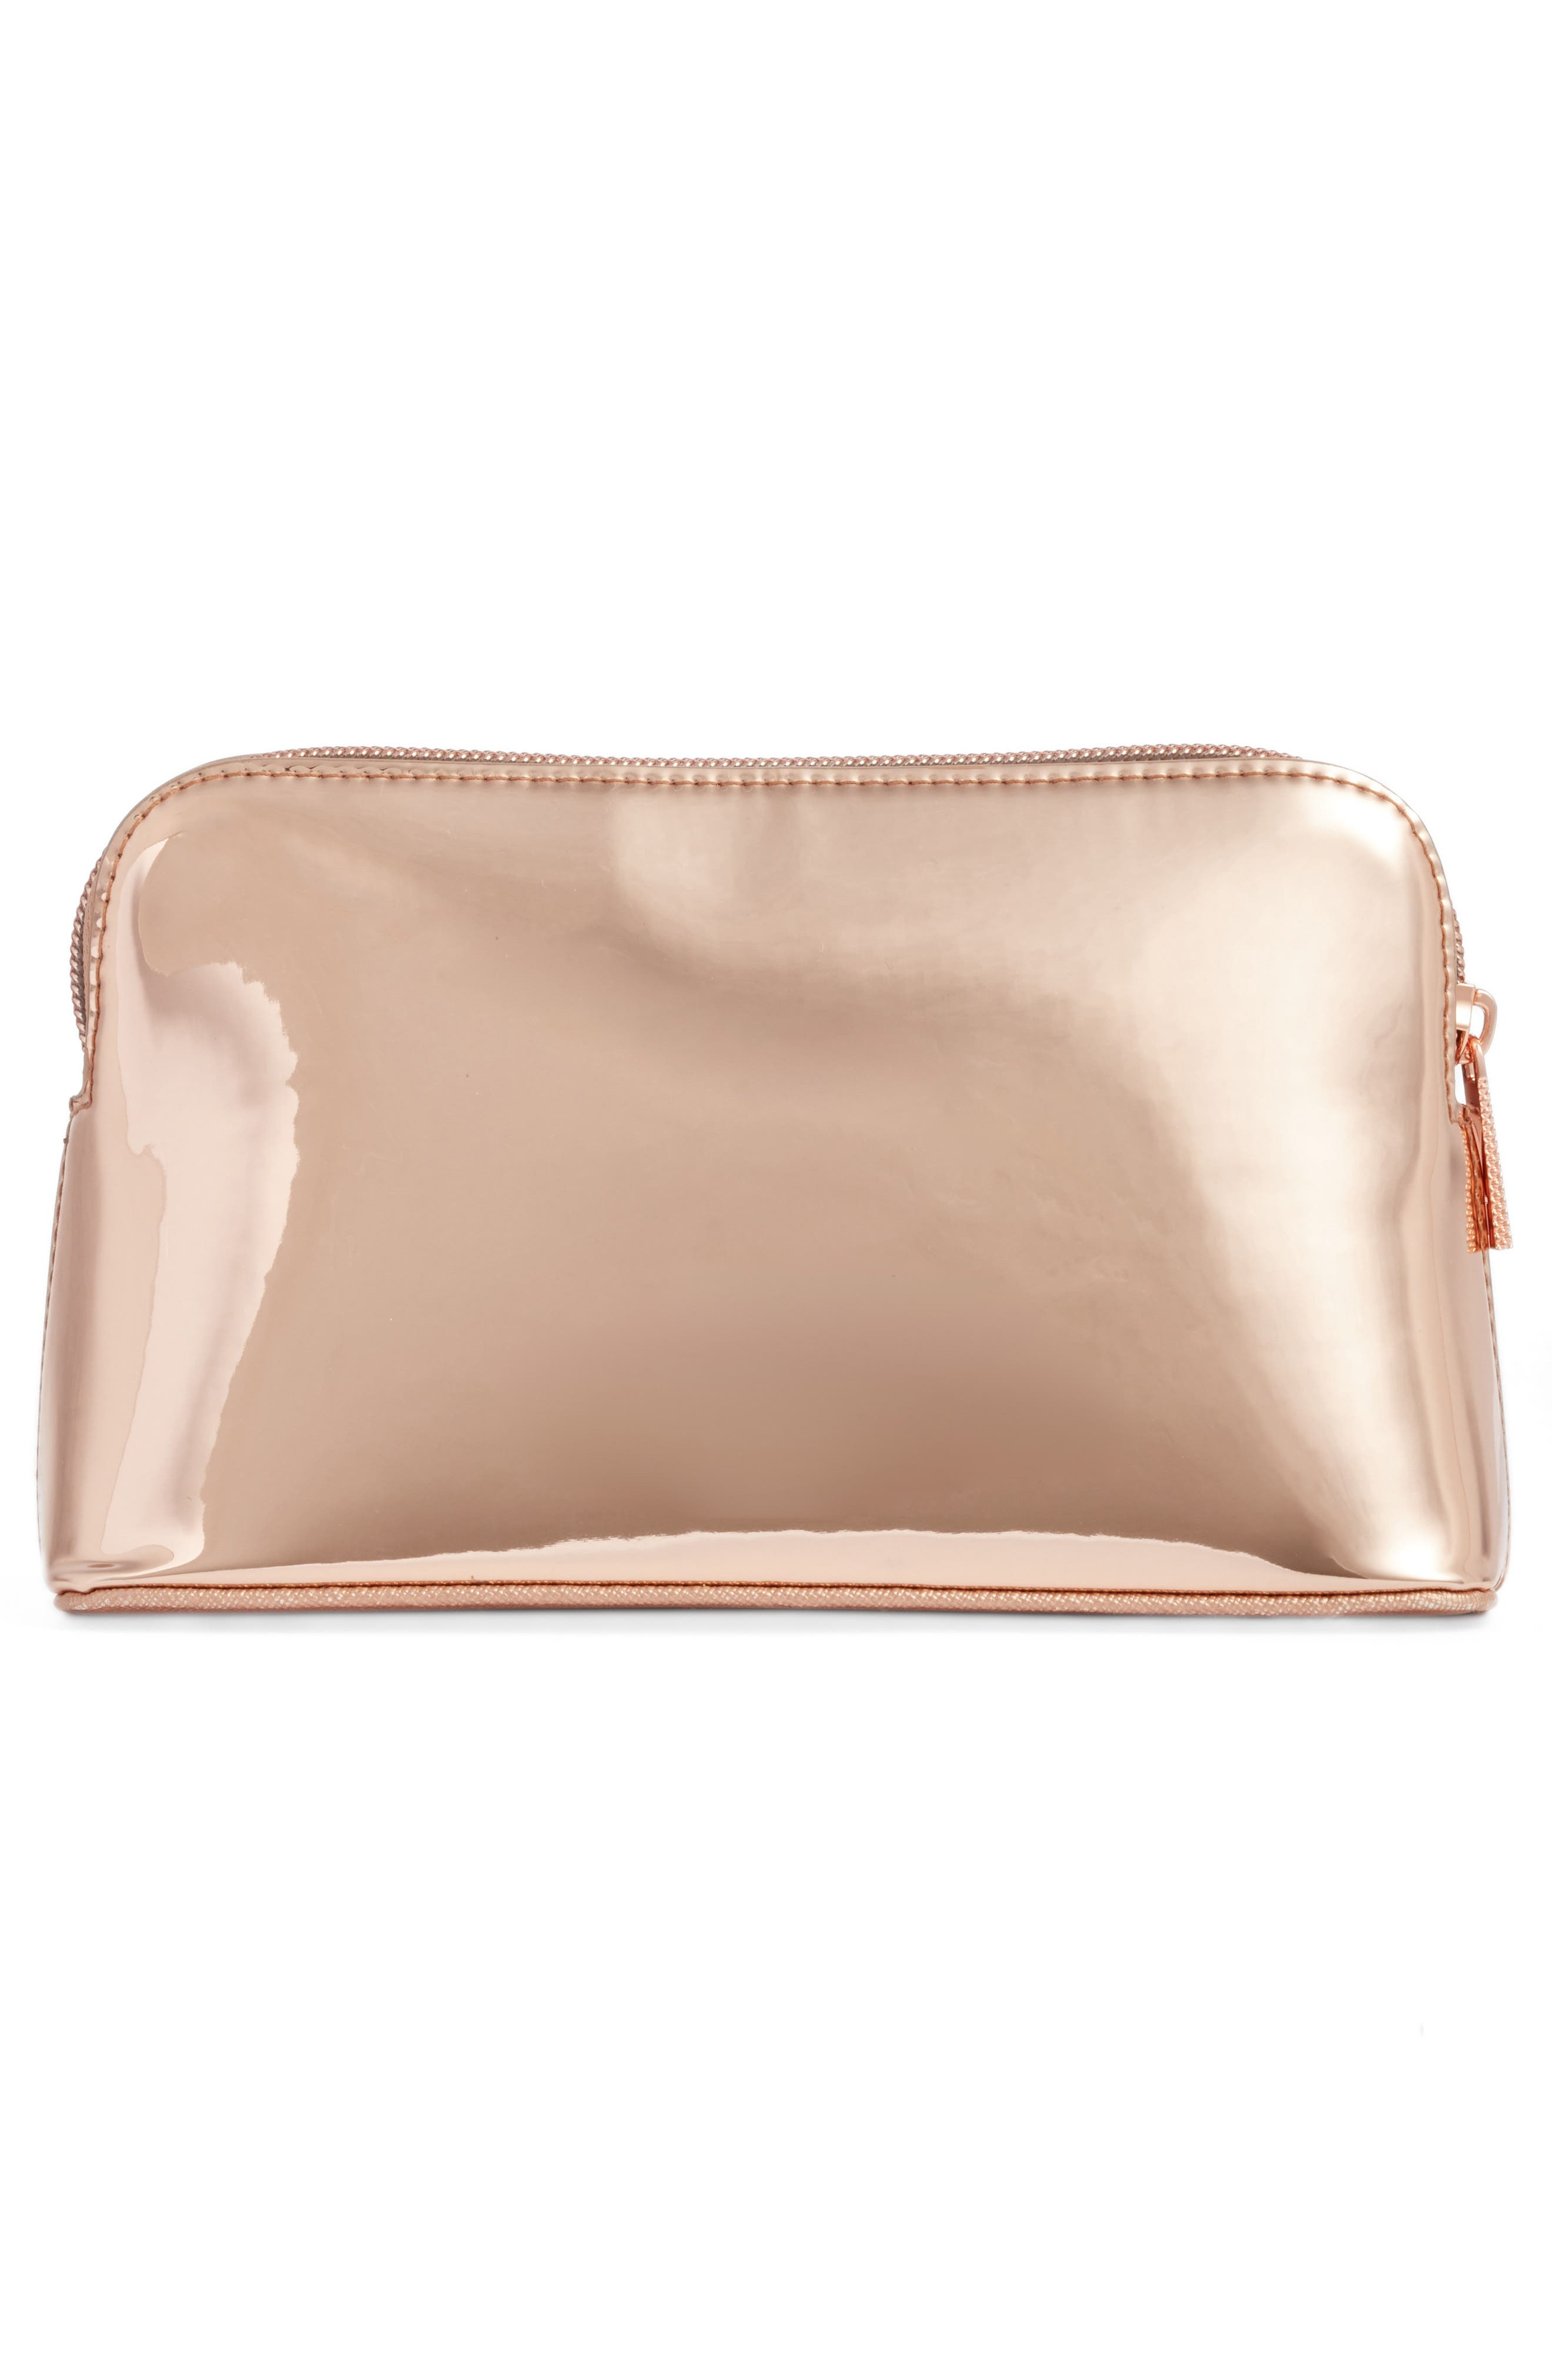 Lindsay Metallic Cosmetics Case,                             Alternate thumbnail 2, color,                             Rose Gold